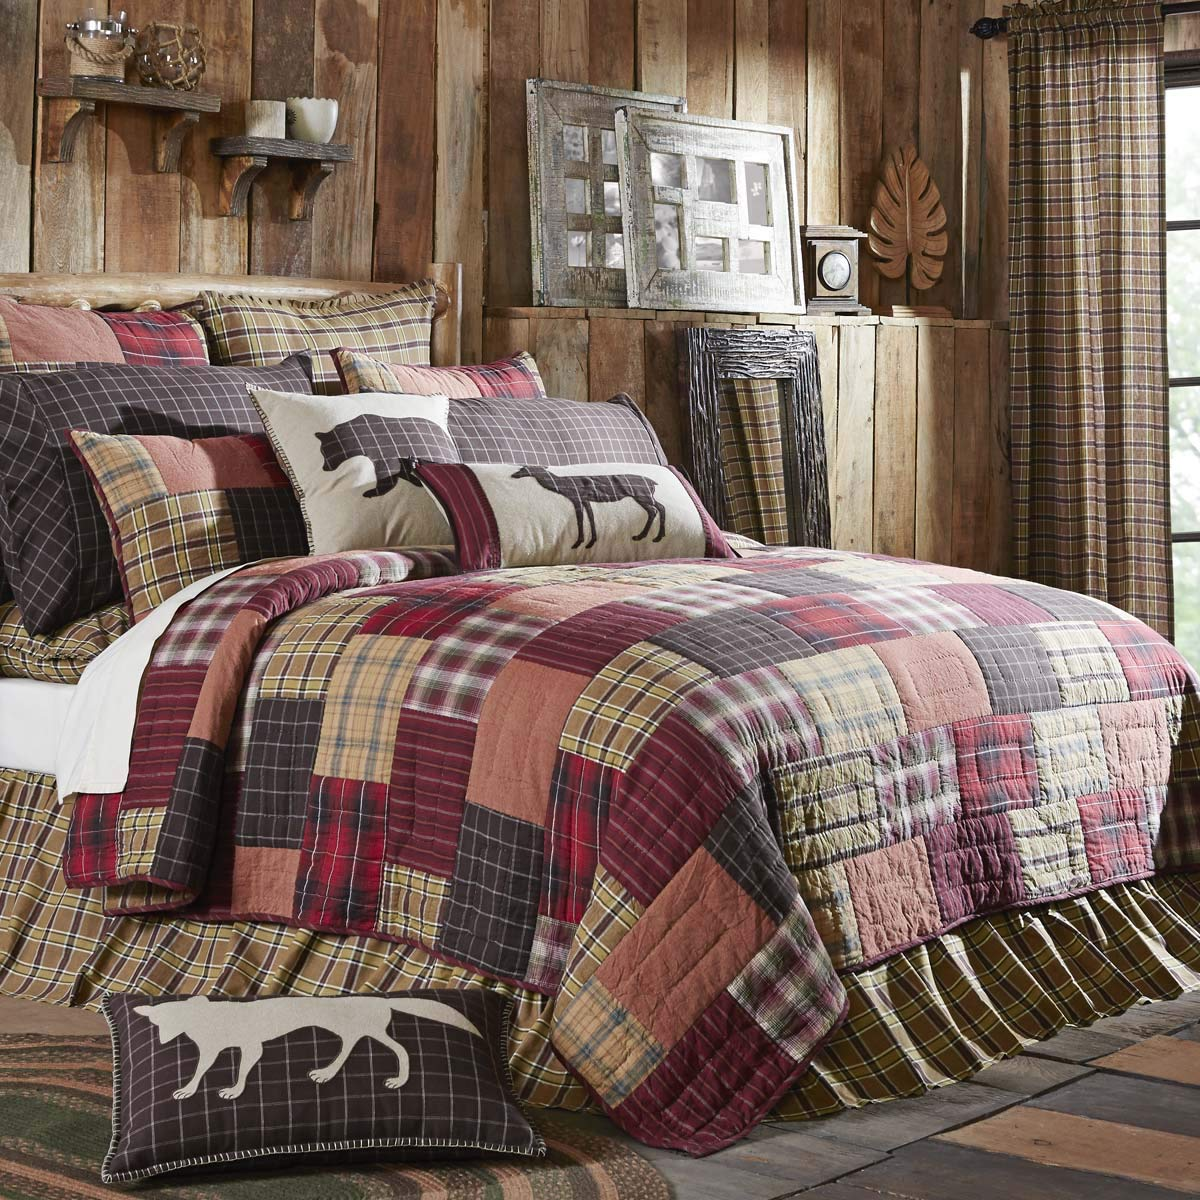 VHC Brands Rustic & Lodge Bedding - Wyatt Red Quilt, Queen, by VHC Brands (Image #2)